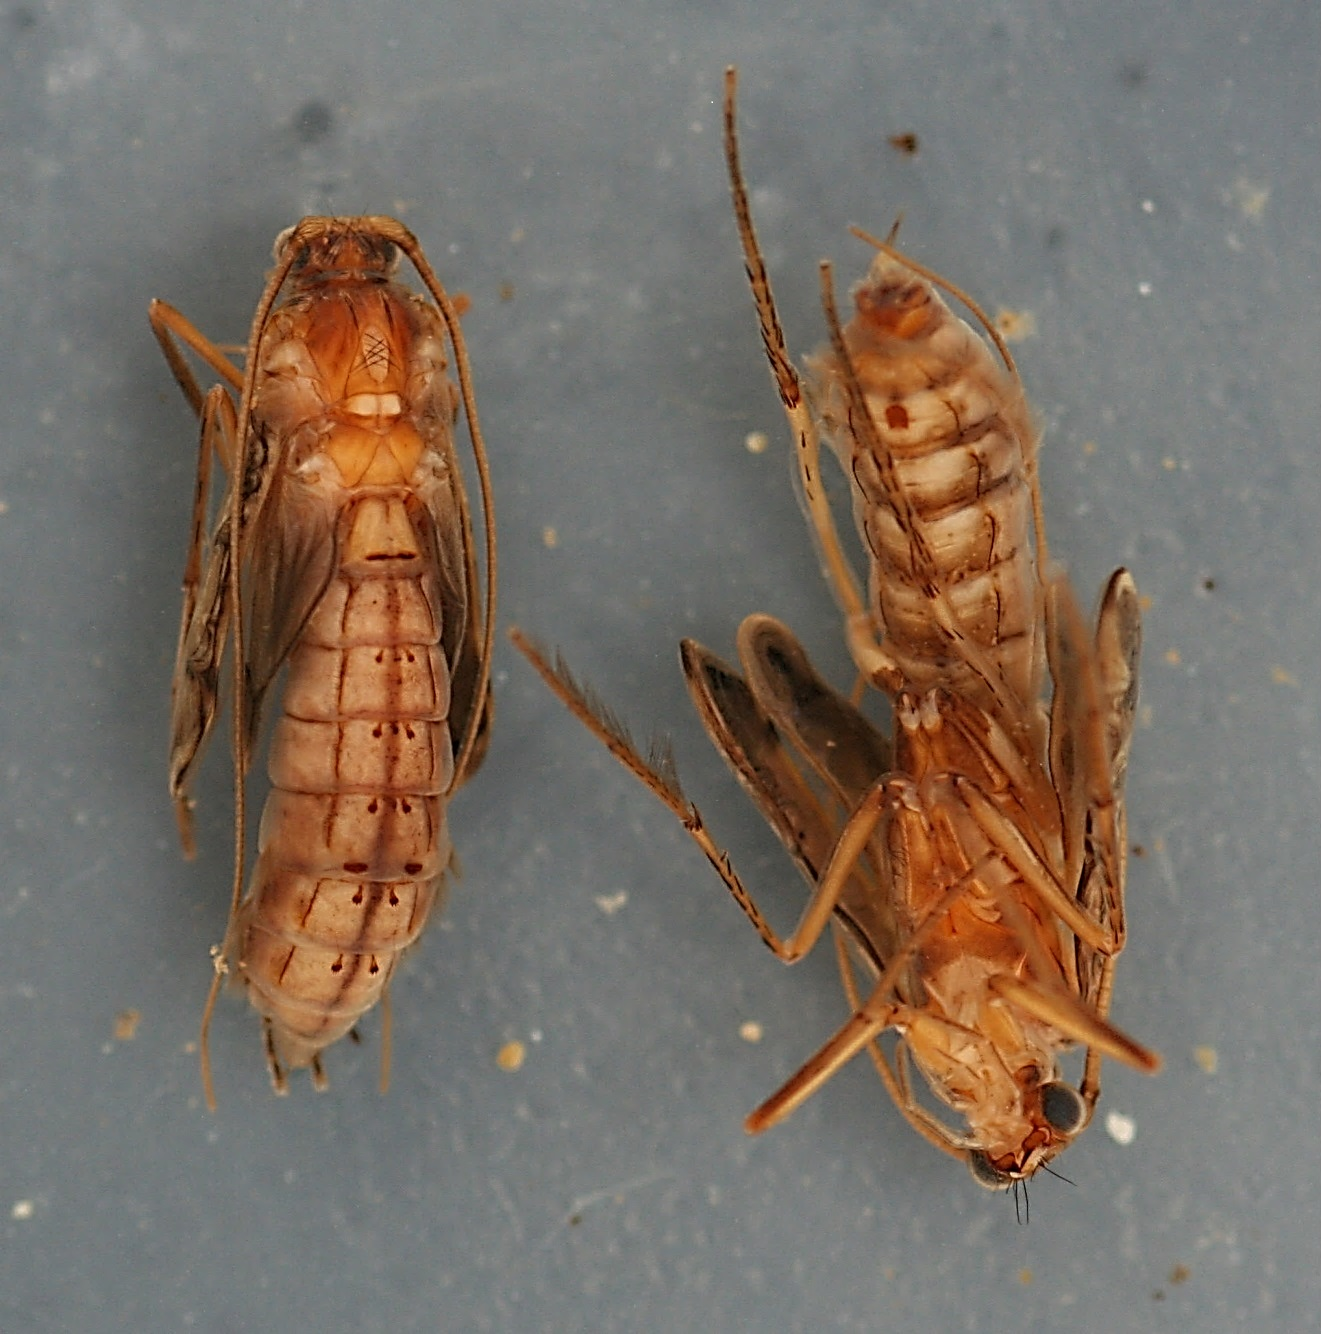 Mature pupae. 11 mm. Collected August 25, 2007.